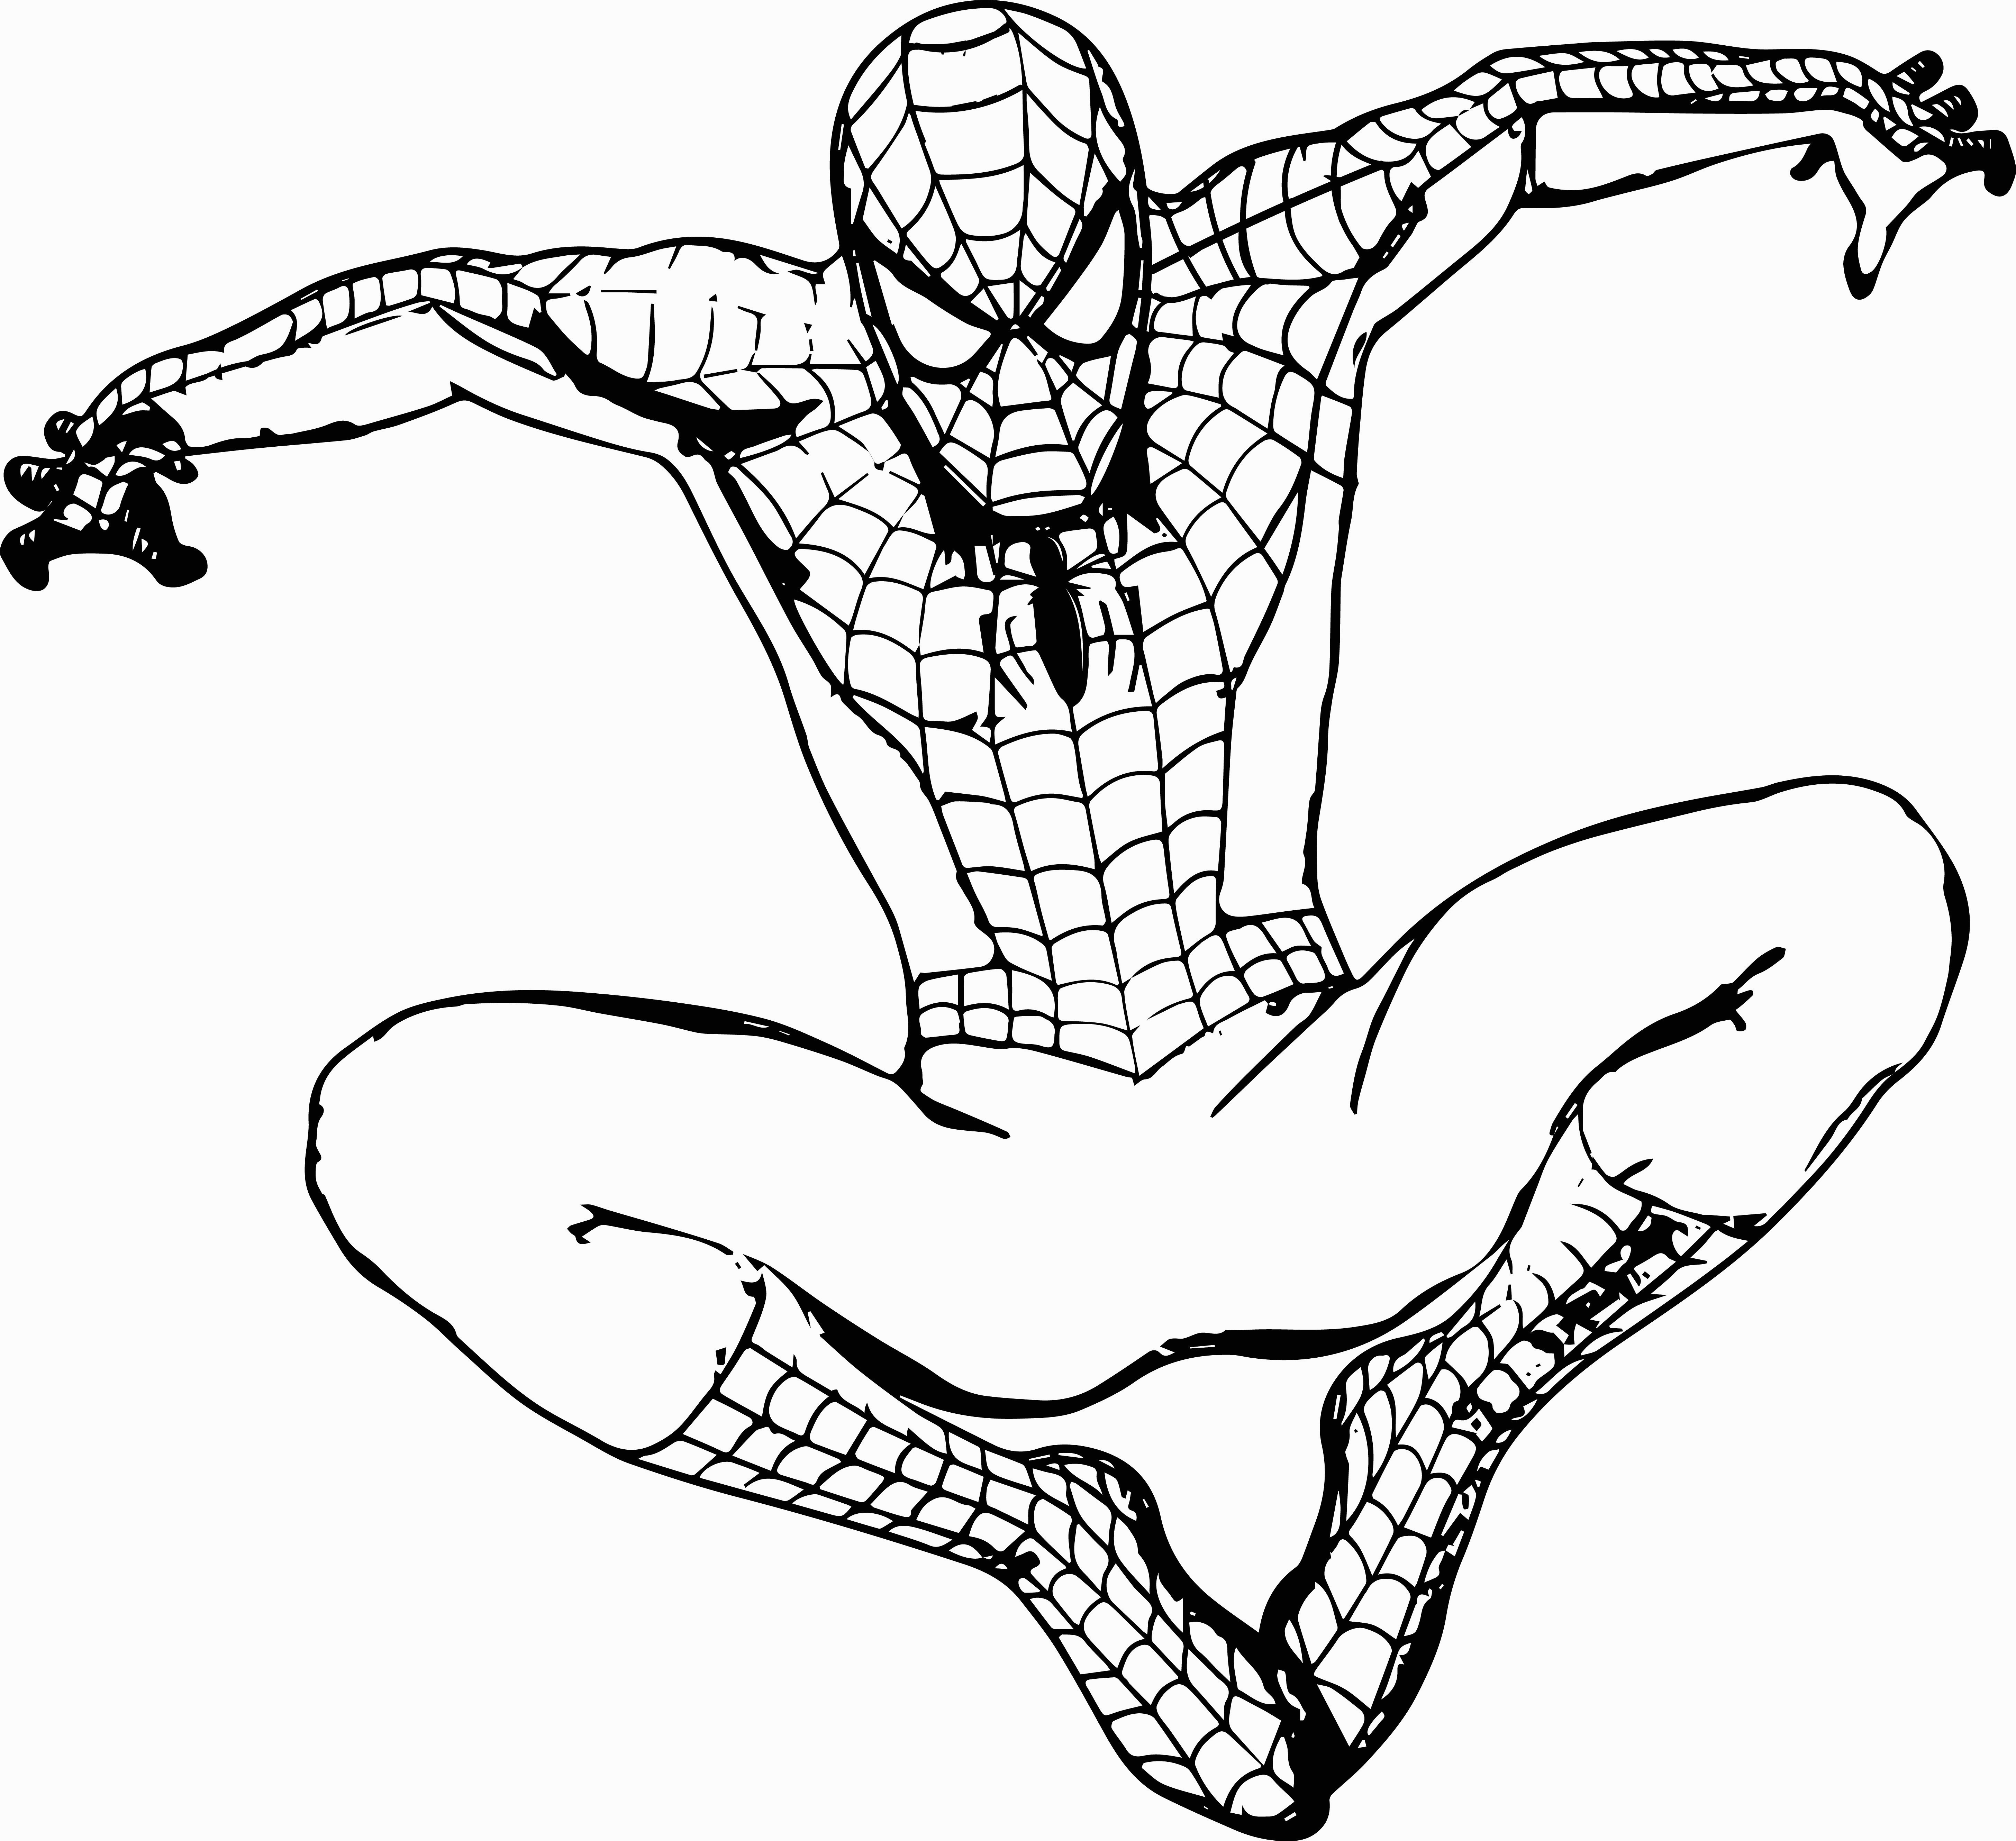 spiderman outline spiderman outline drawing at getdrawings free download spiderman outline